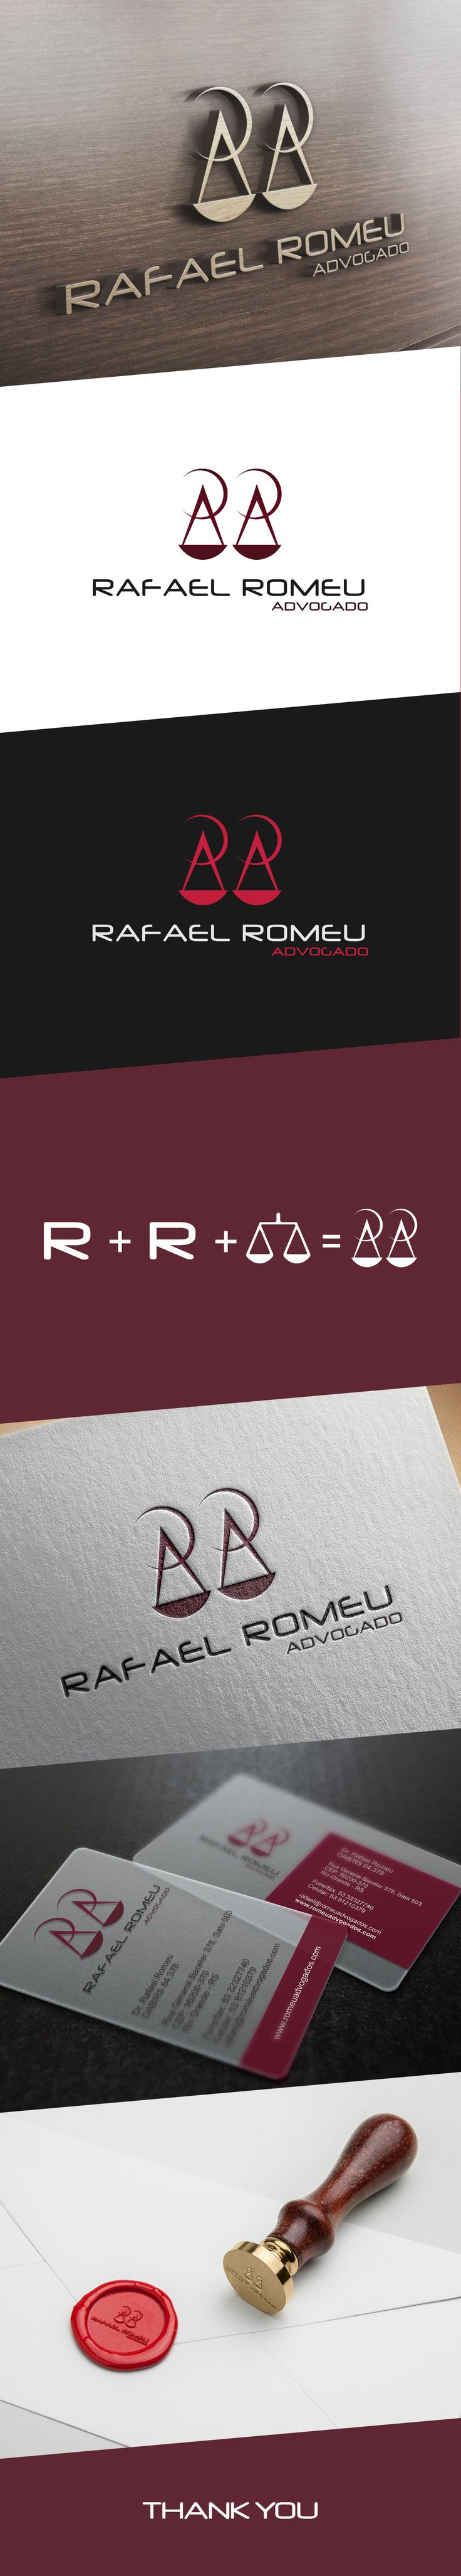 Rafael Romeu Advogado - LOGO on Behance